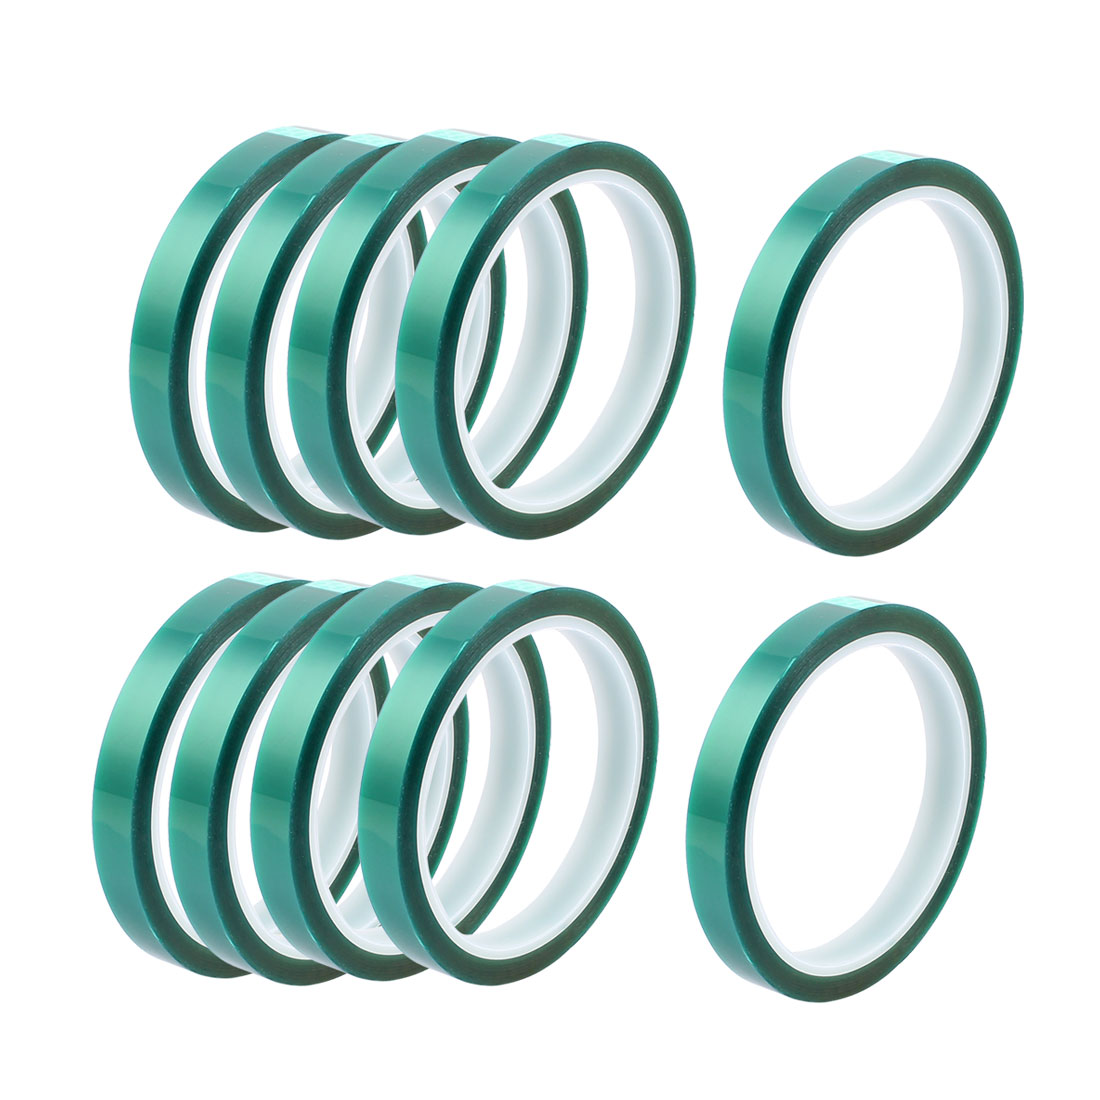 10pcs 10mm Width 33M Long Green PET High Temperature Heat Resistant PCB Solder Tape